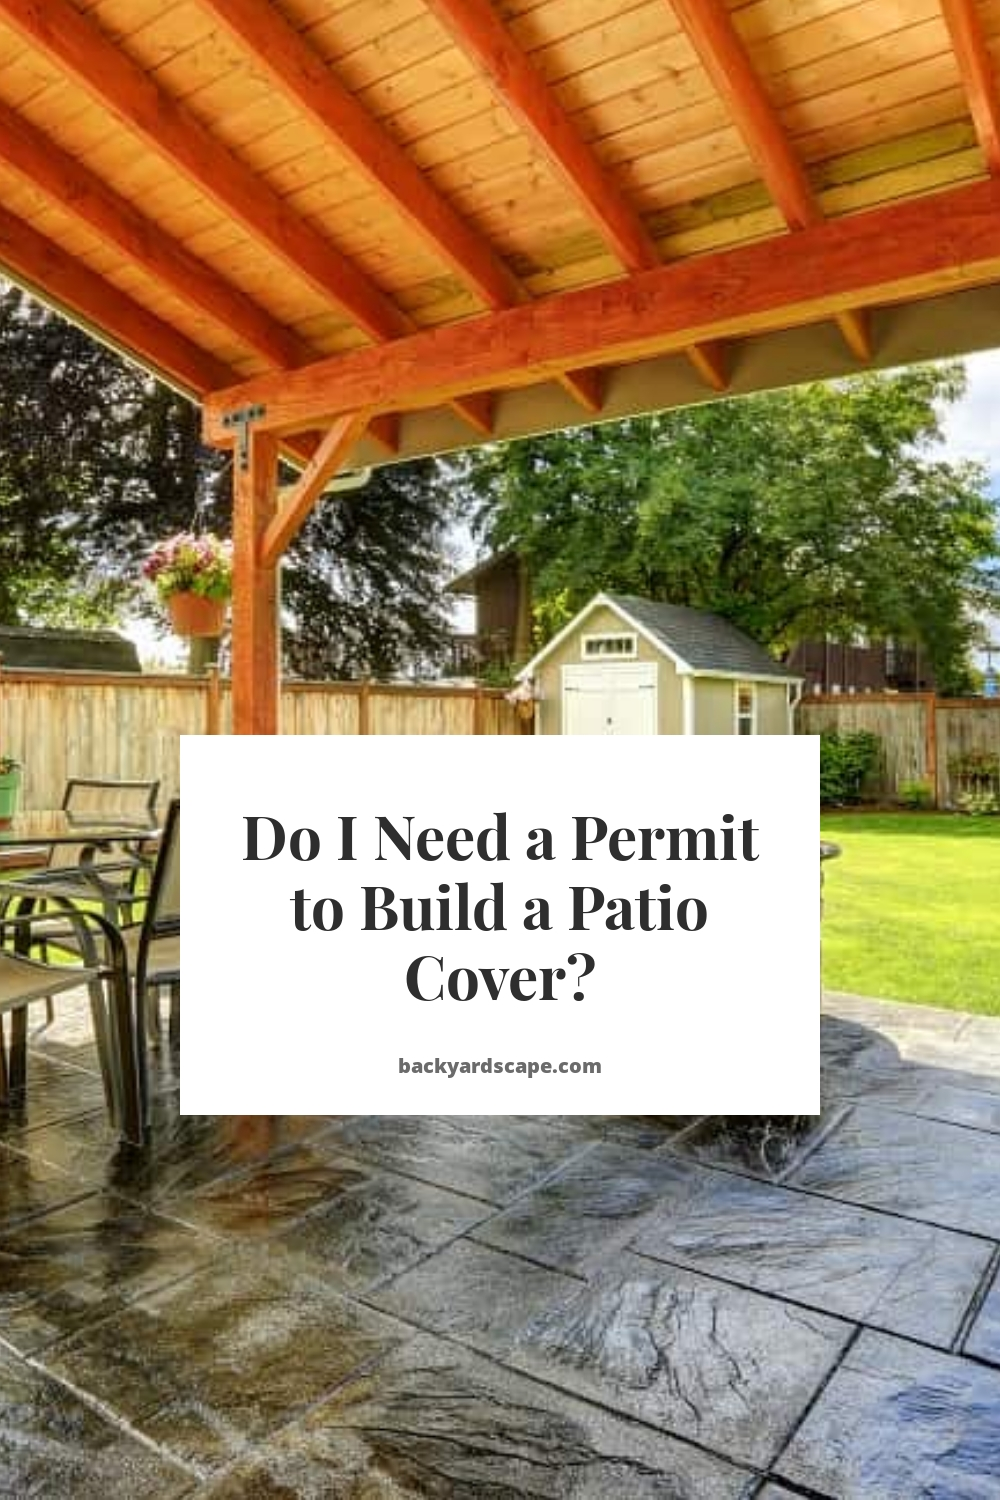 Do I Need a Permit to Build a Patio Cover?